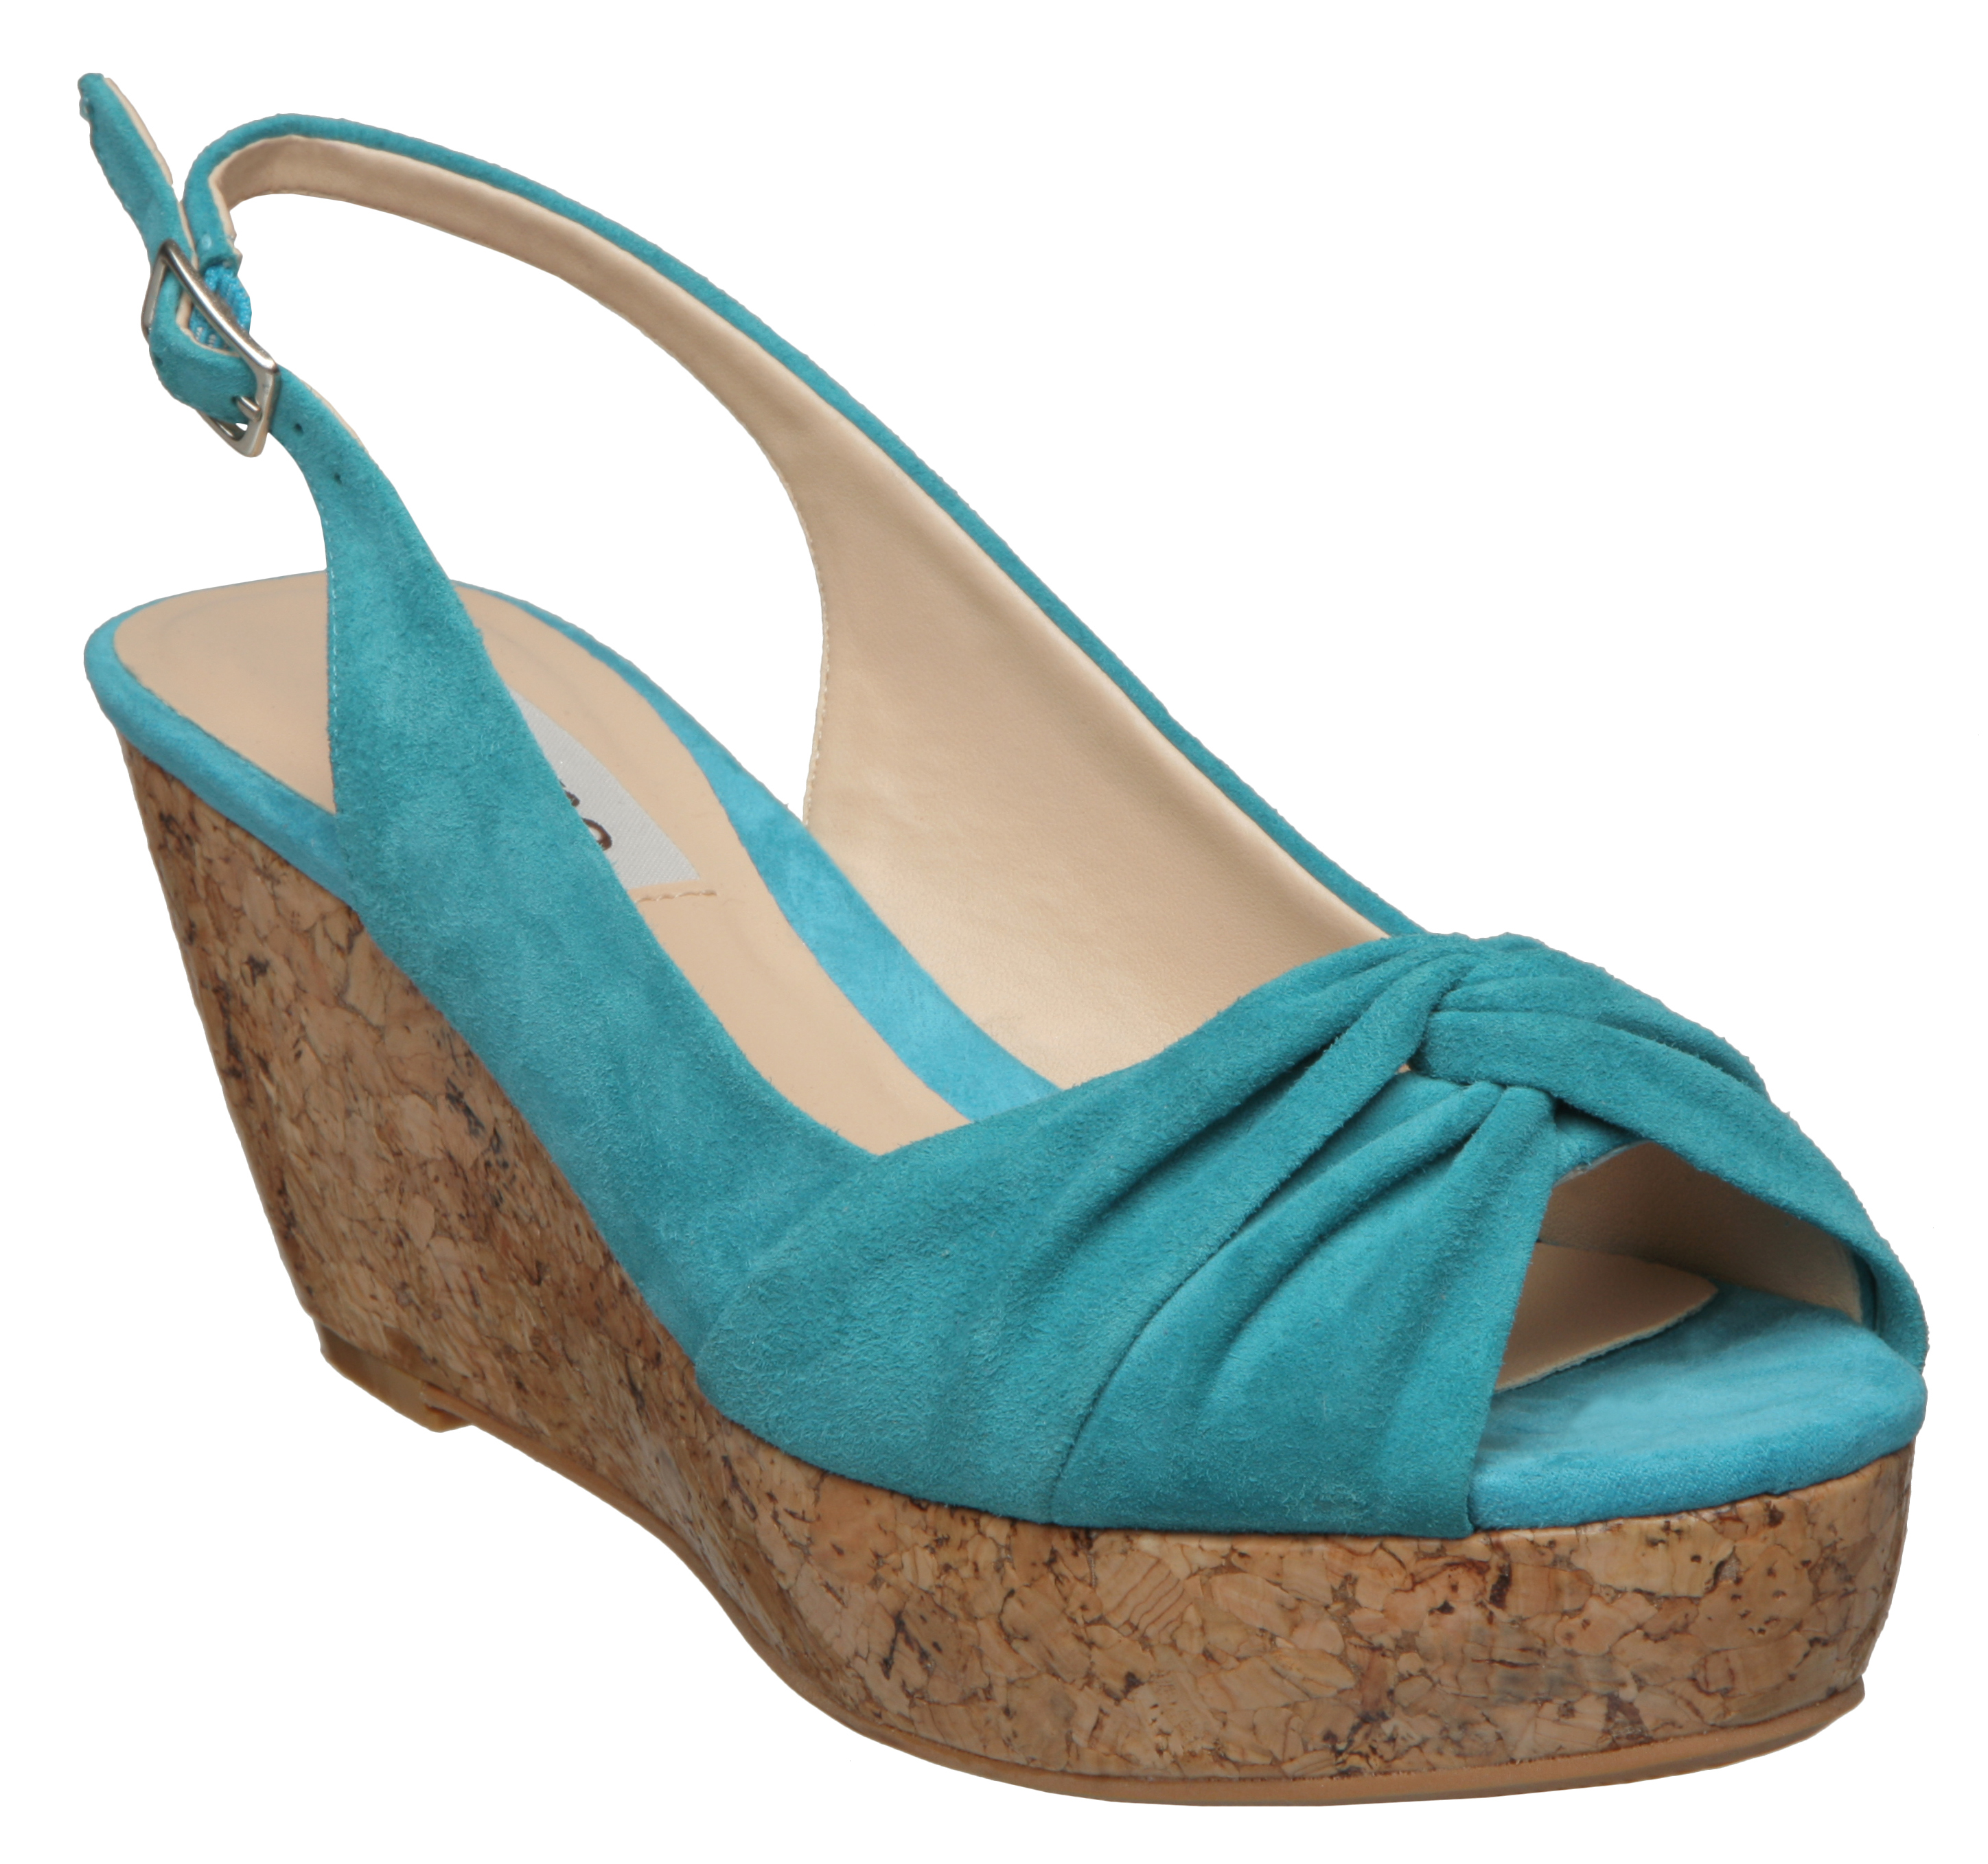 NEW-DUNE-WOMENS-GENEVA-PEEP-TOE-LADIES-SLINGBACK-HIGH-WEDGE-HEEL-SHOES-SIZE-3-8